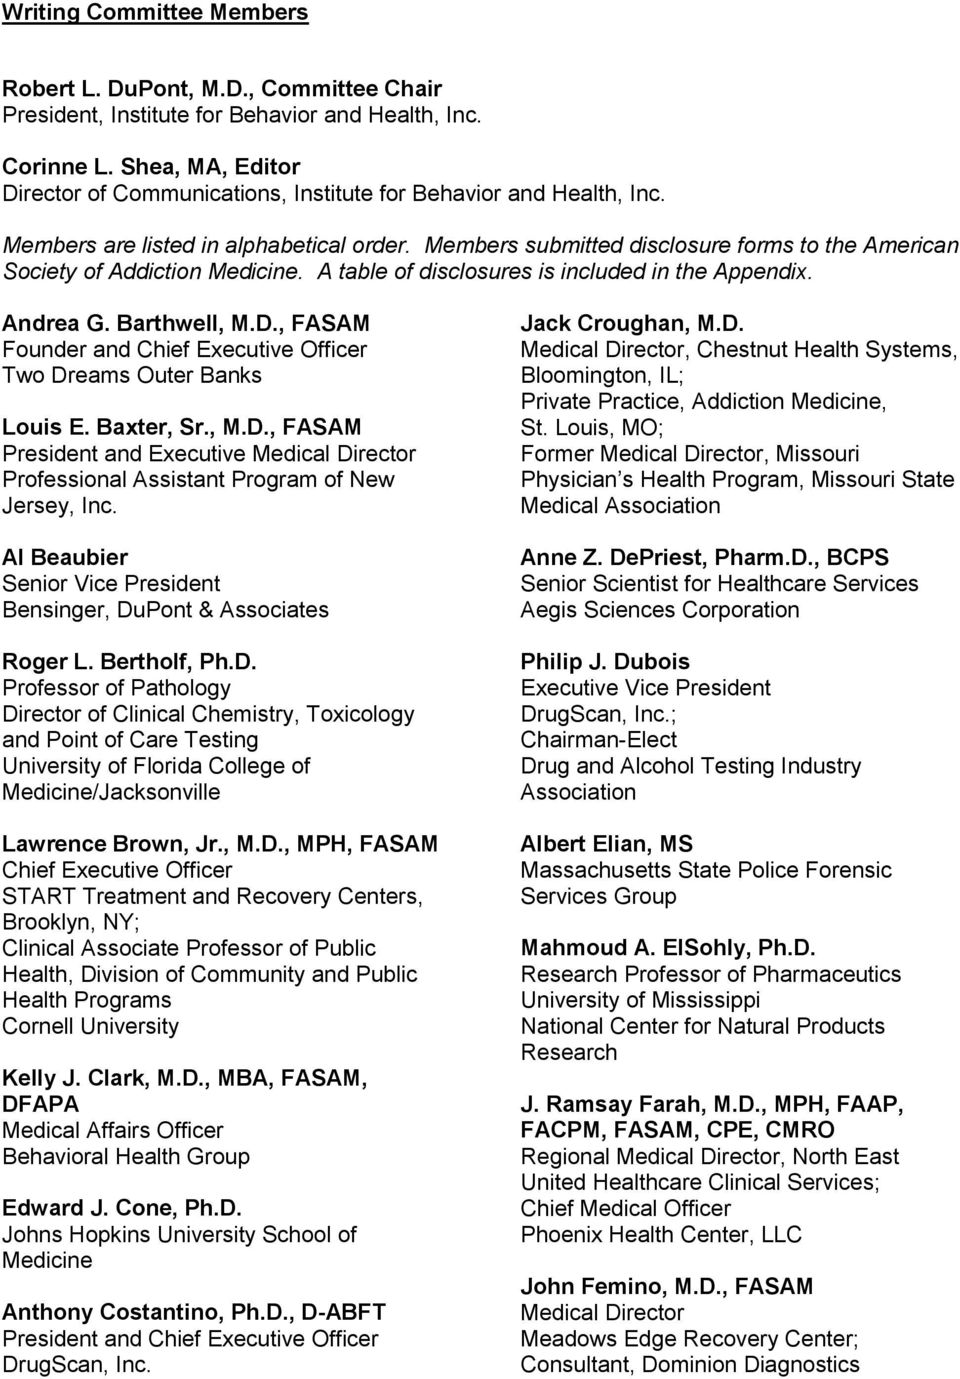 Members submitted disclosure forms to the American Society of Addiction Medicine. A table of disclosures is included in the Appendix. Andrea G. Barthwell, M.D.